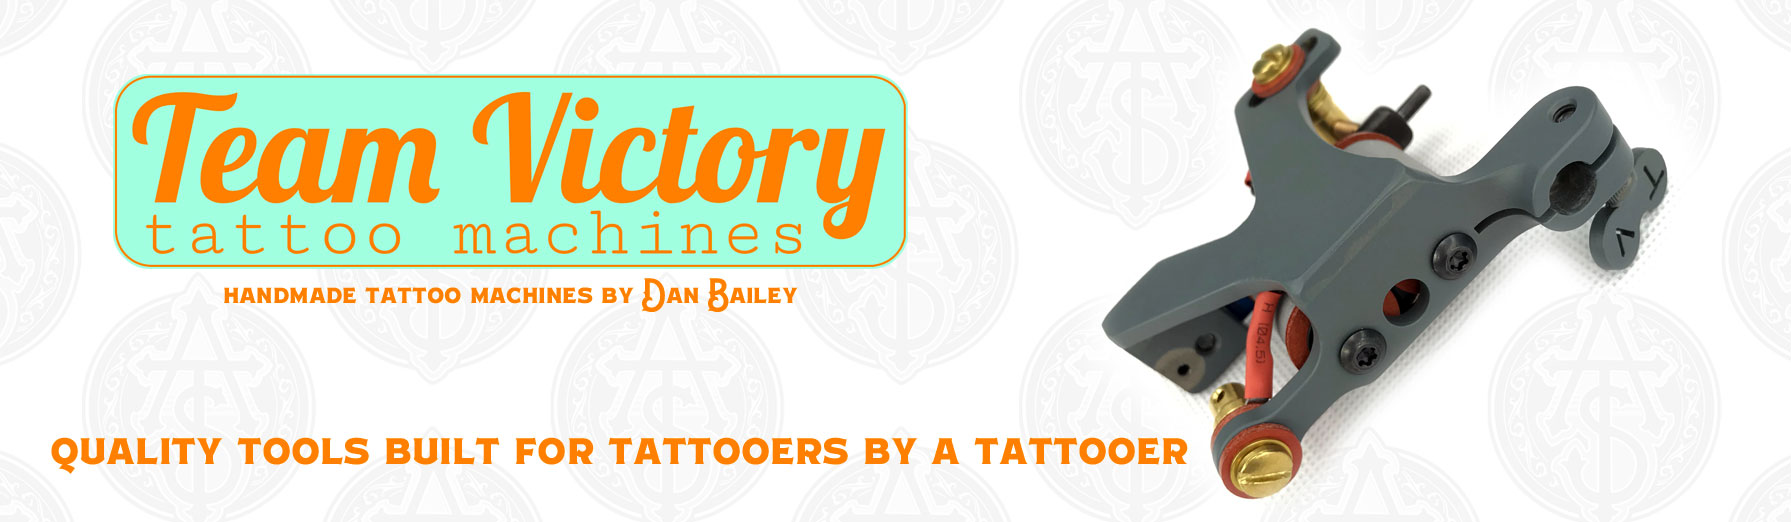 Team Victory Tattoo Machines - Alliance Tattoo Supply